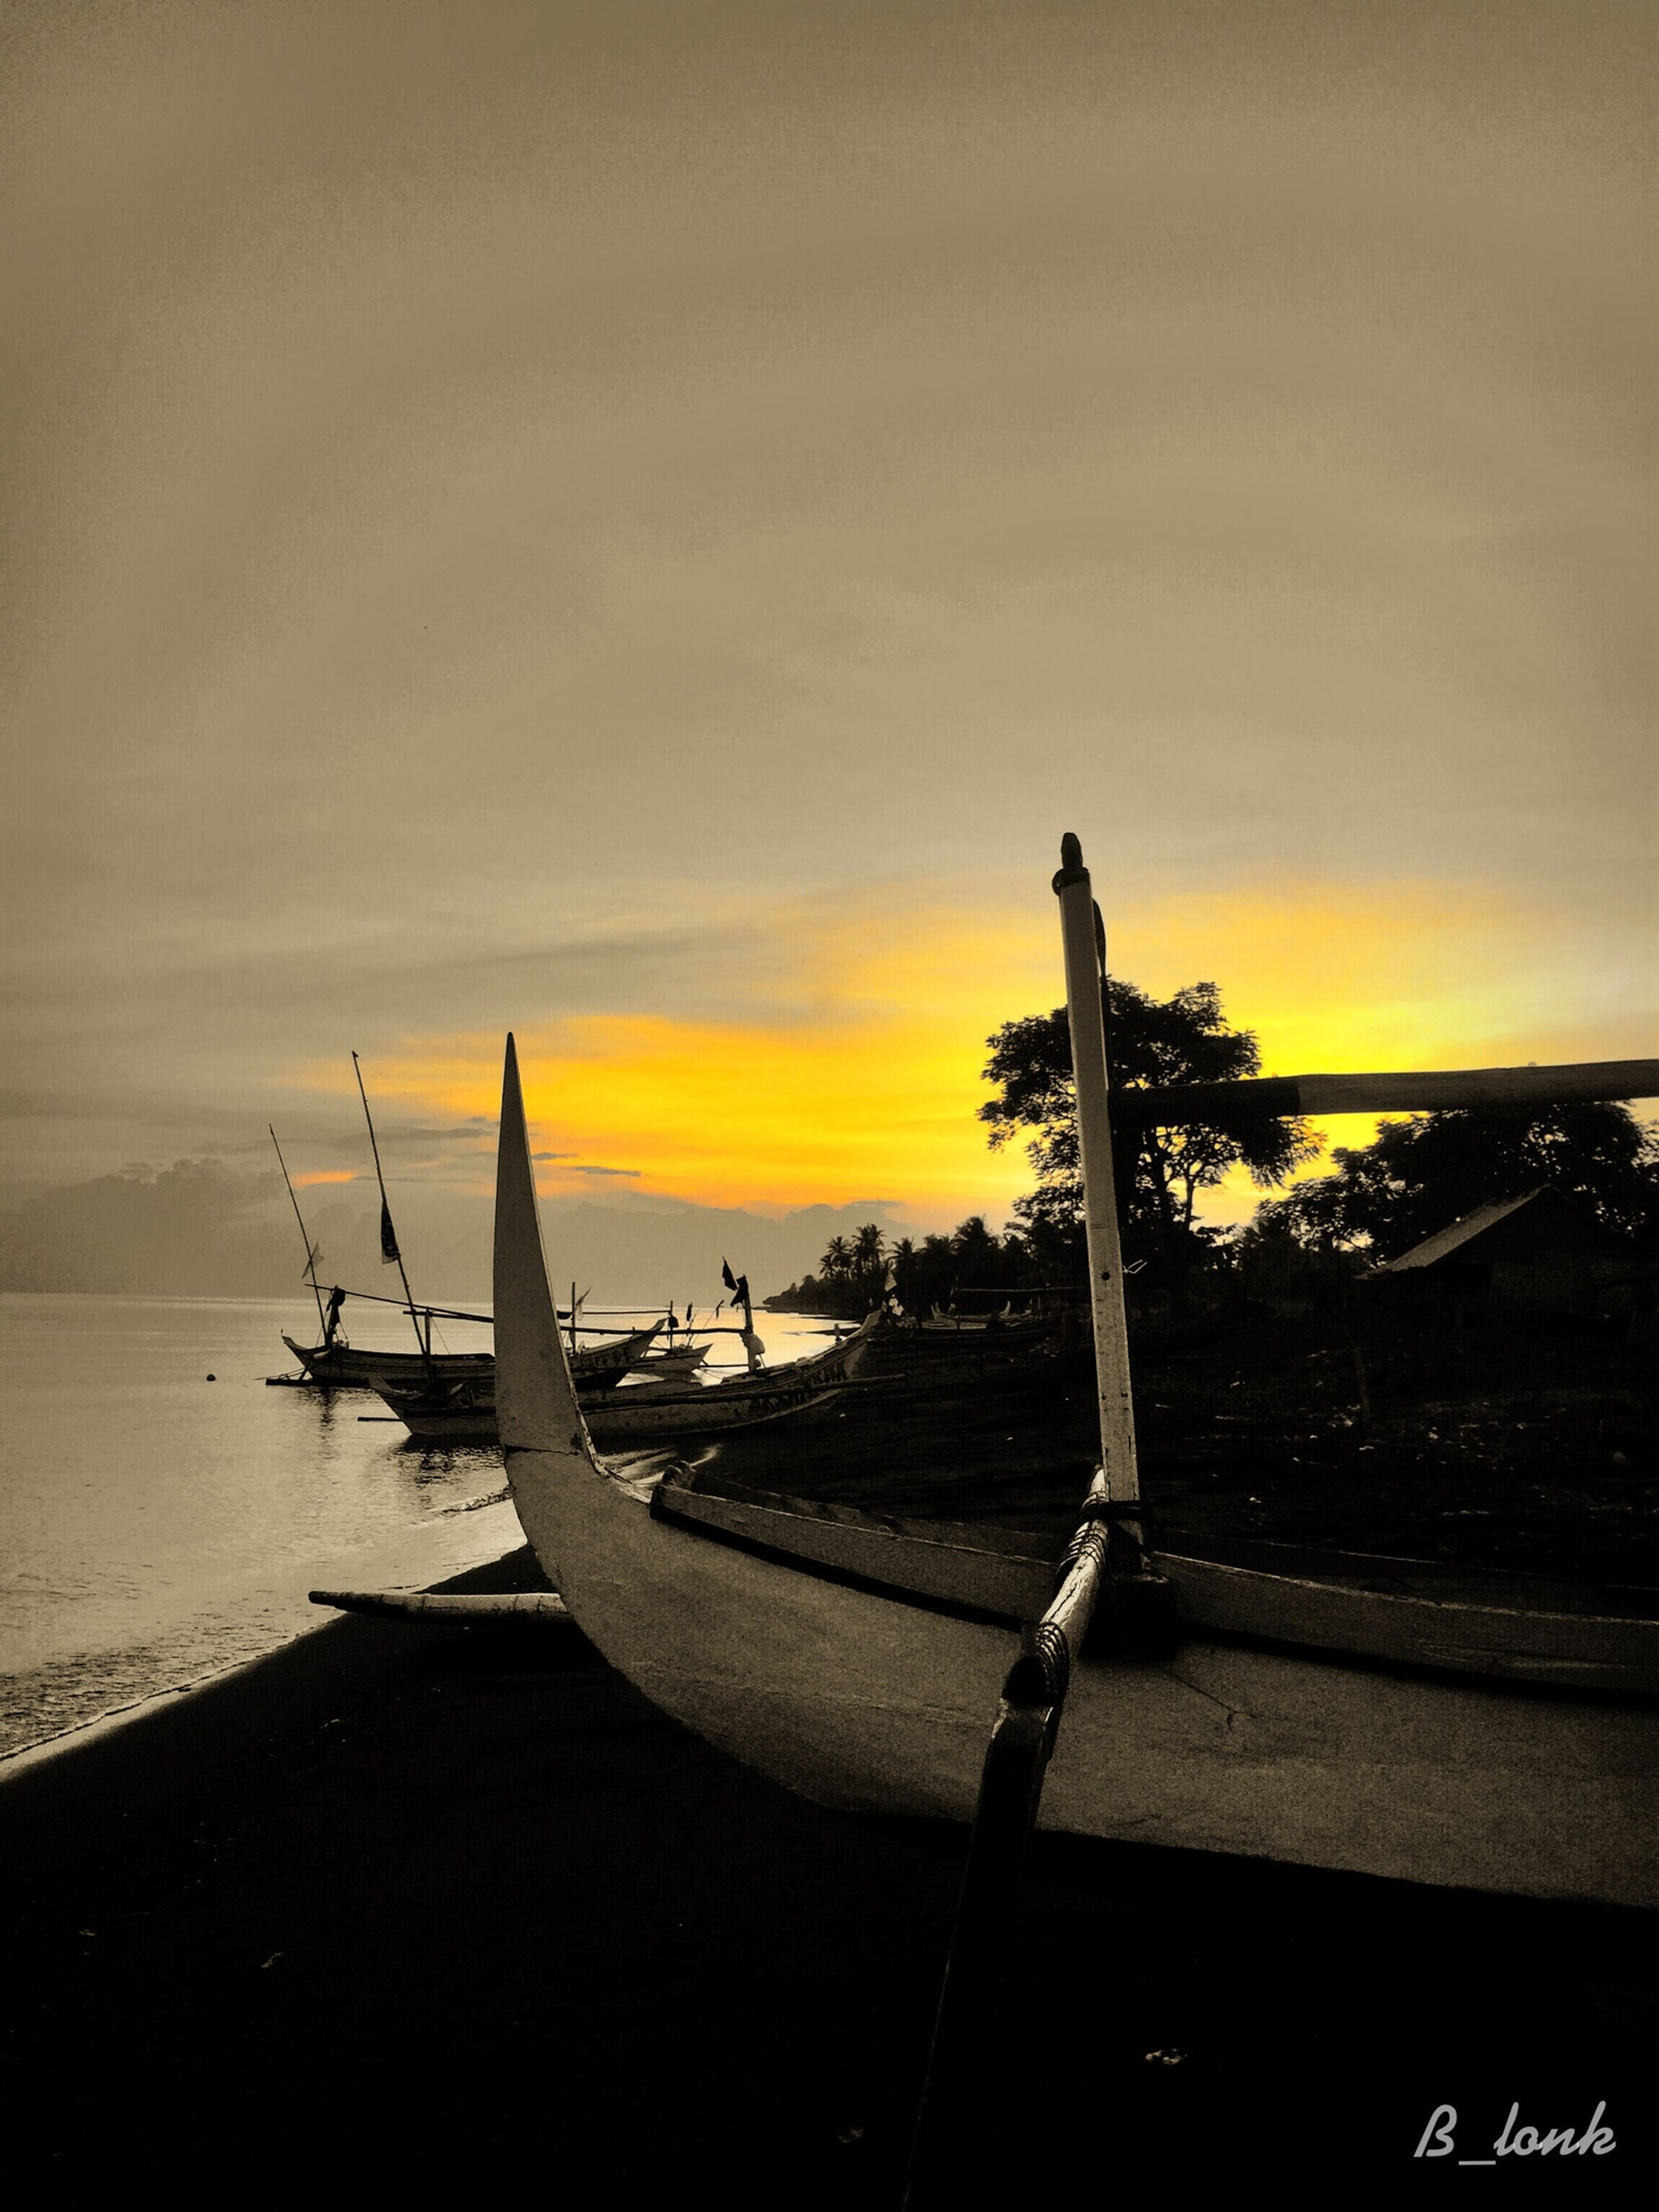 sunset, sea, horizon over water, sky, water, beach, scenics, orange color, beauty in nature, transportation, tranquility, tranquil scene, nature, cloud - sky, shore, mode of transport, silhouette, idyllic, outdoors, nautical vessel